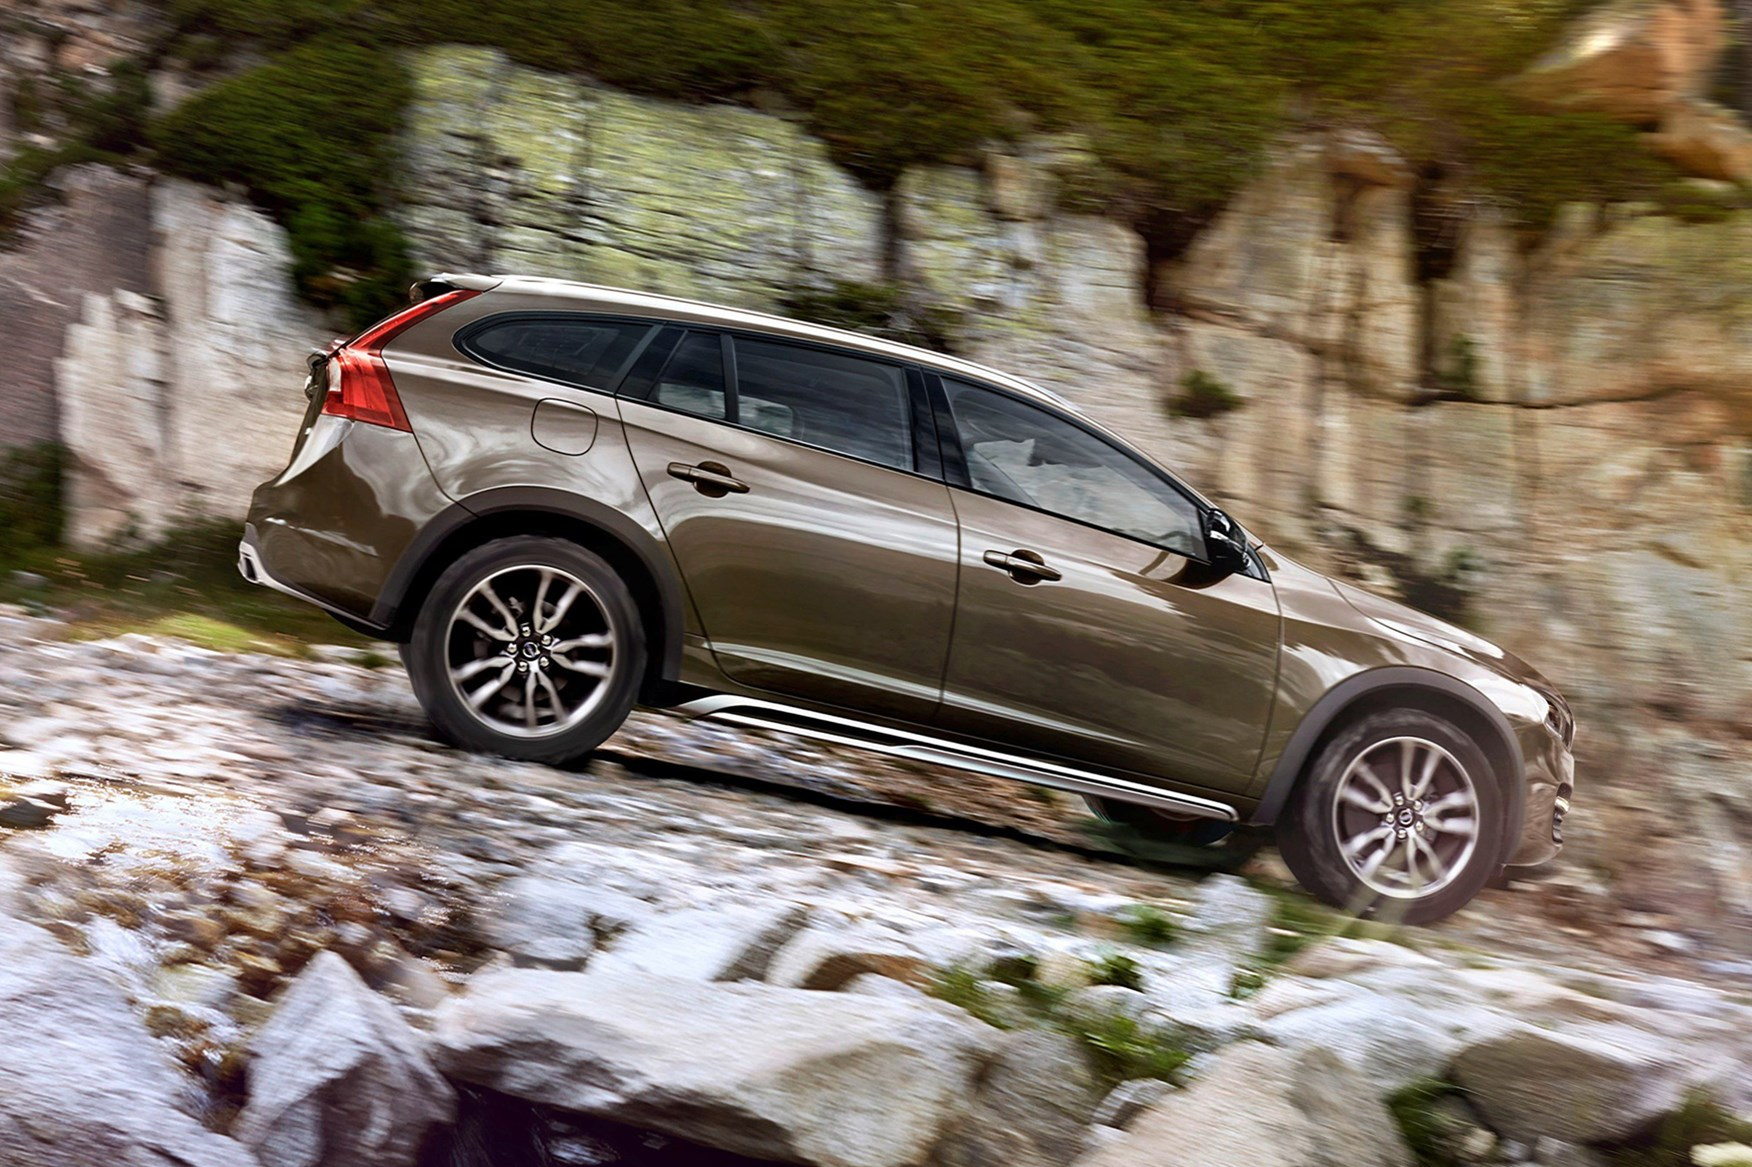 Volvo v60 cross country review 2015 parkers - View All Images Of The Volvo V60 Cross Country